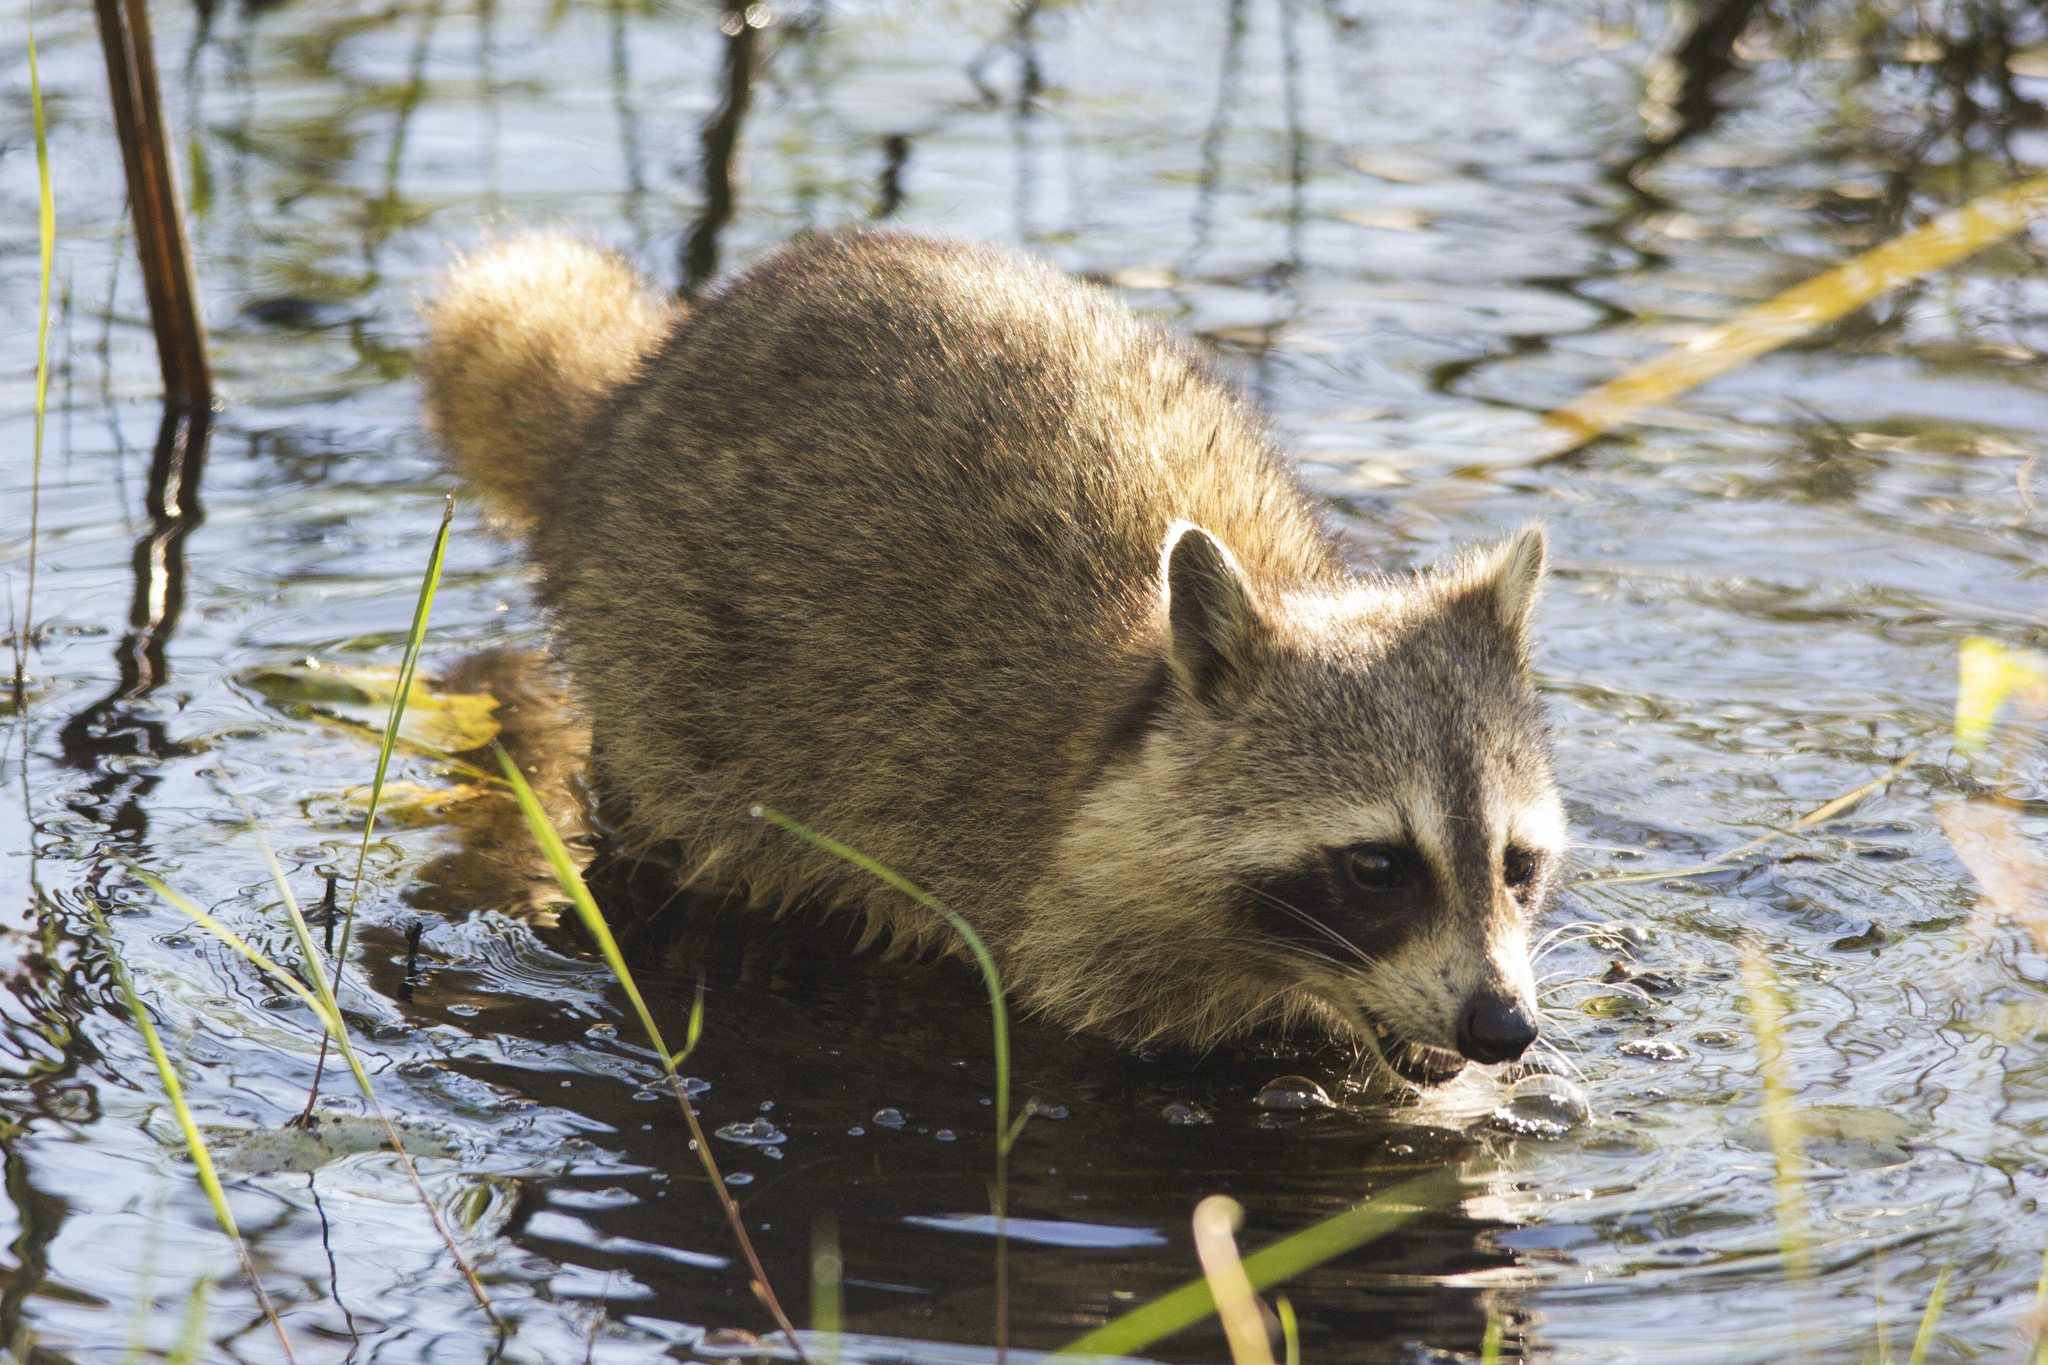 A raccoon wades through a swamp